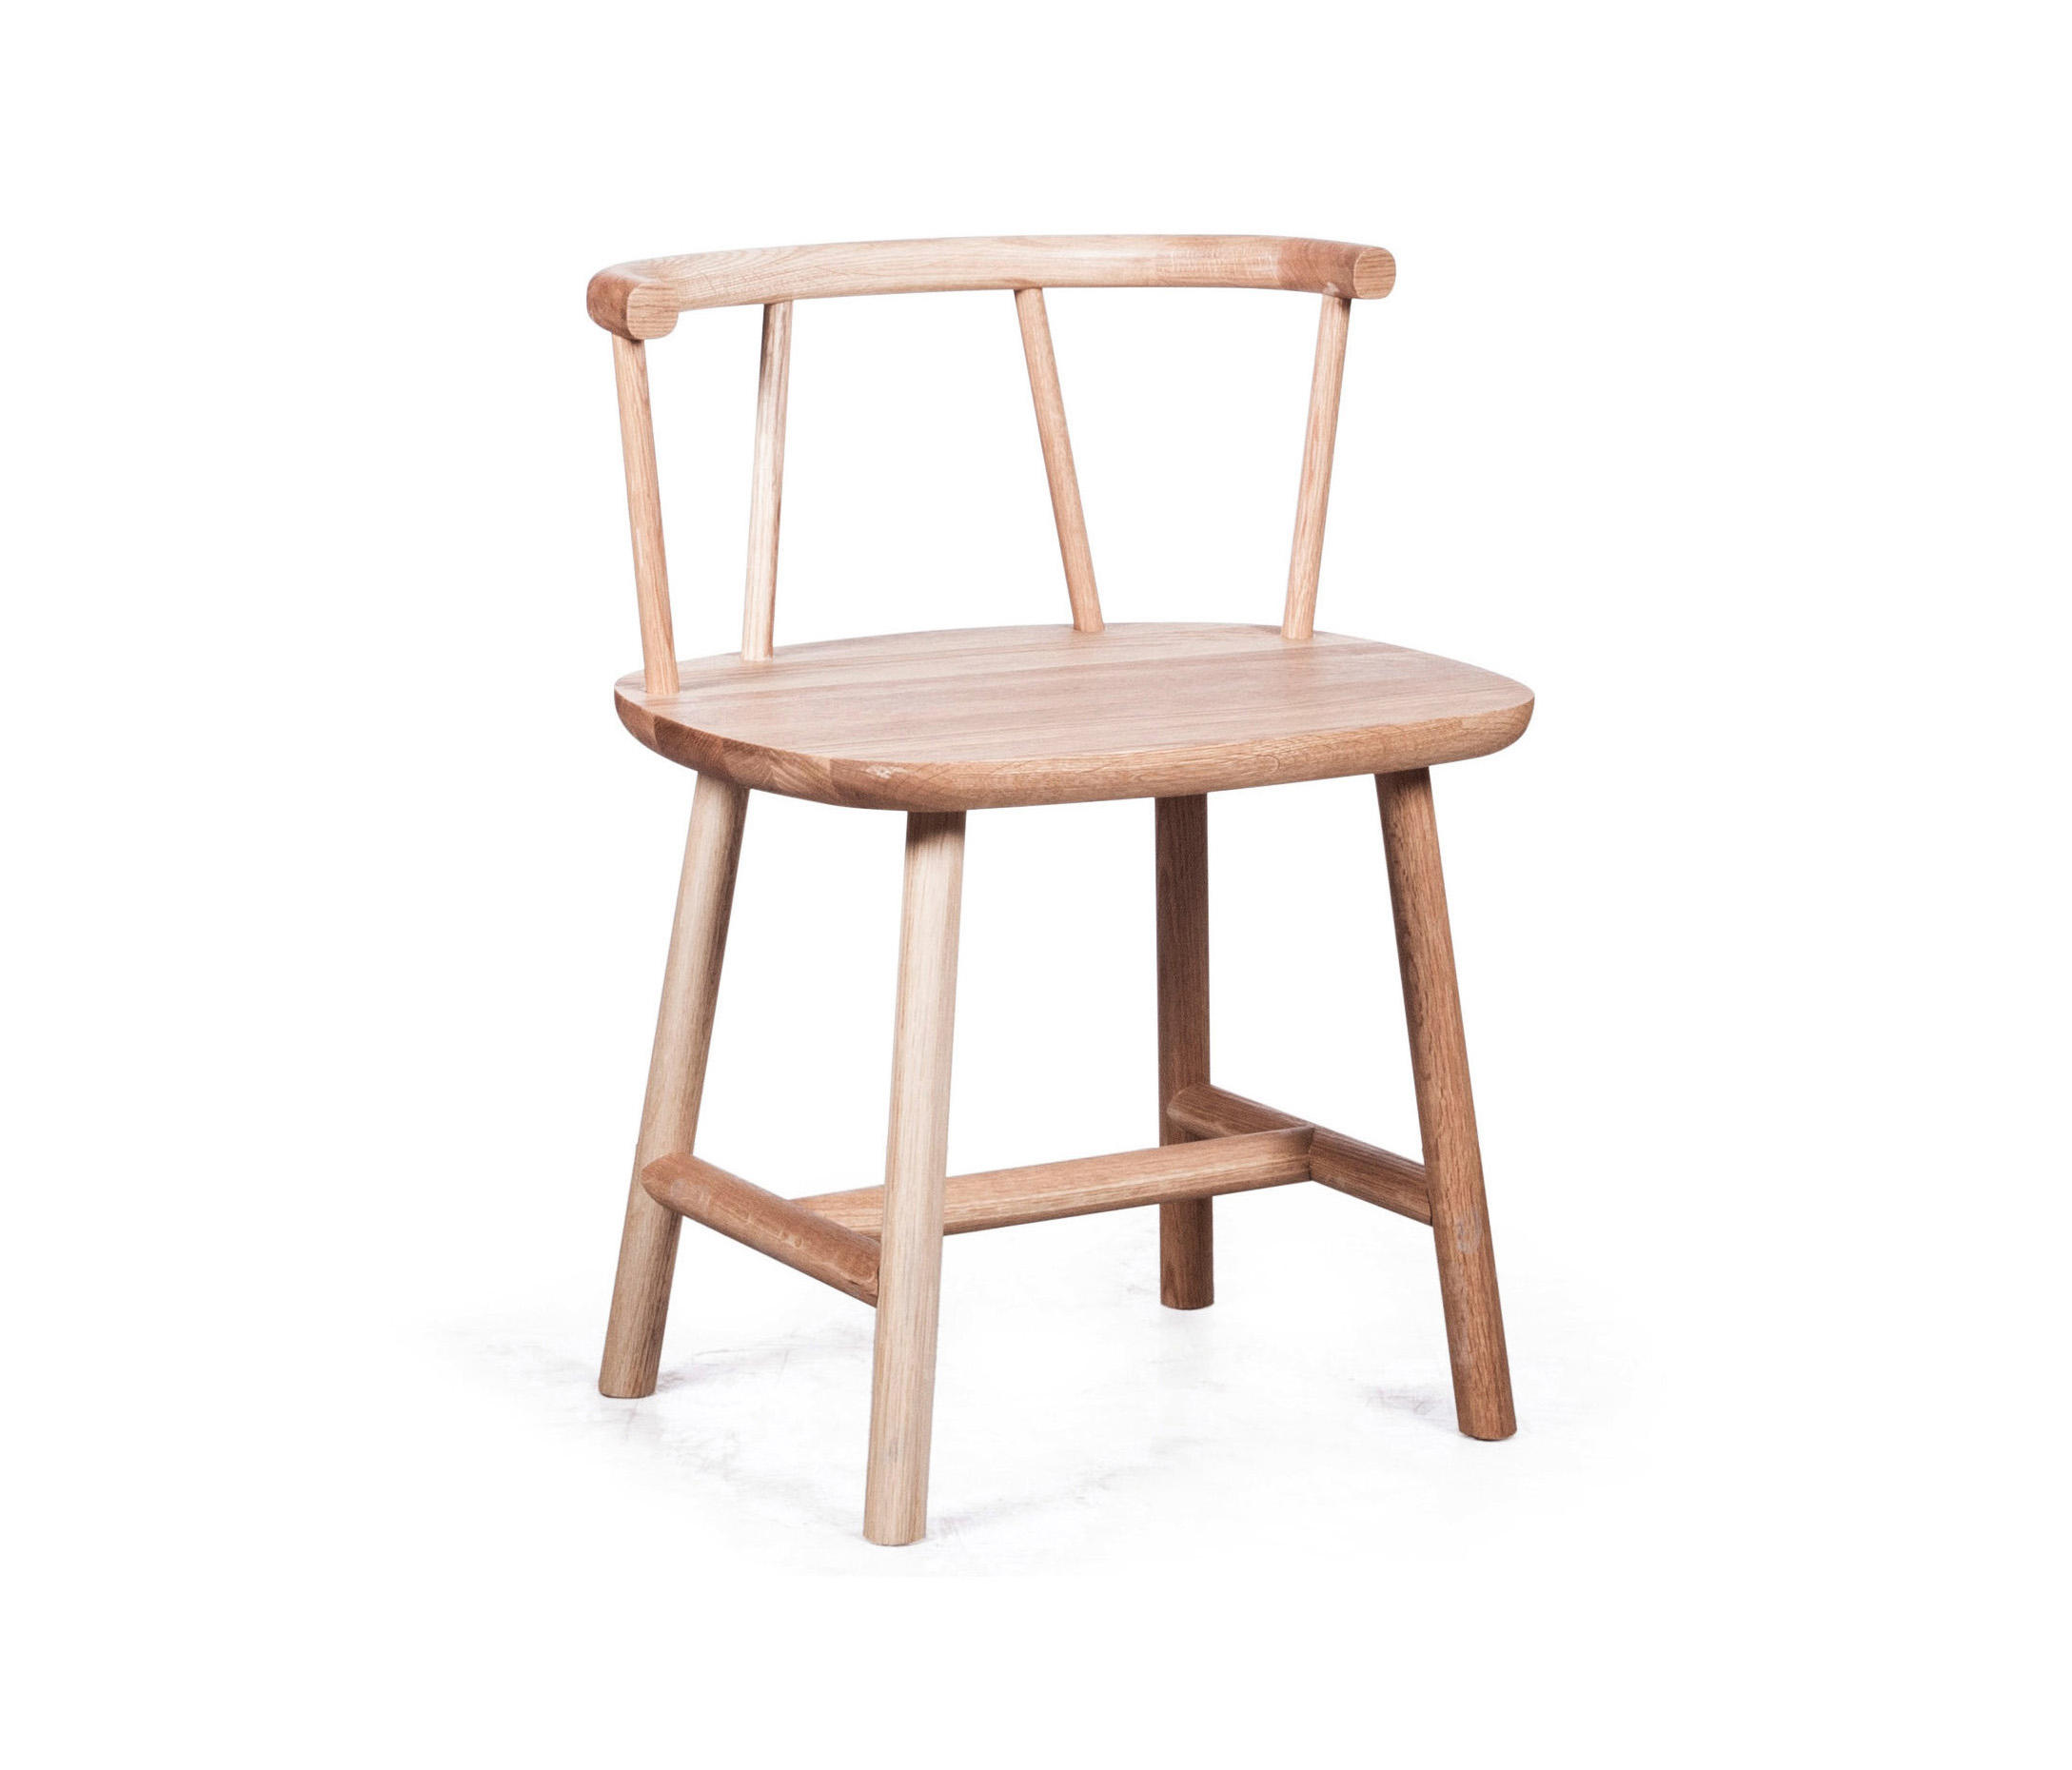 Salo chair by Made by Choice | Chairs  sc 1 st  Architonic & SALO CHAIR - Chairs from Made by Choice | Architonic